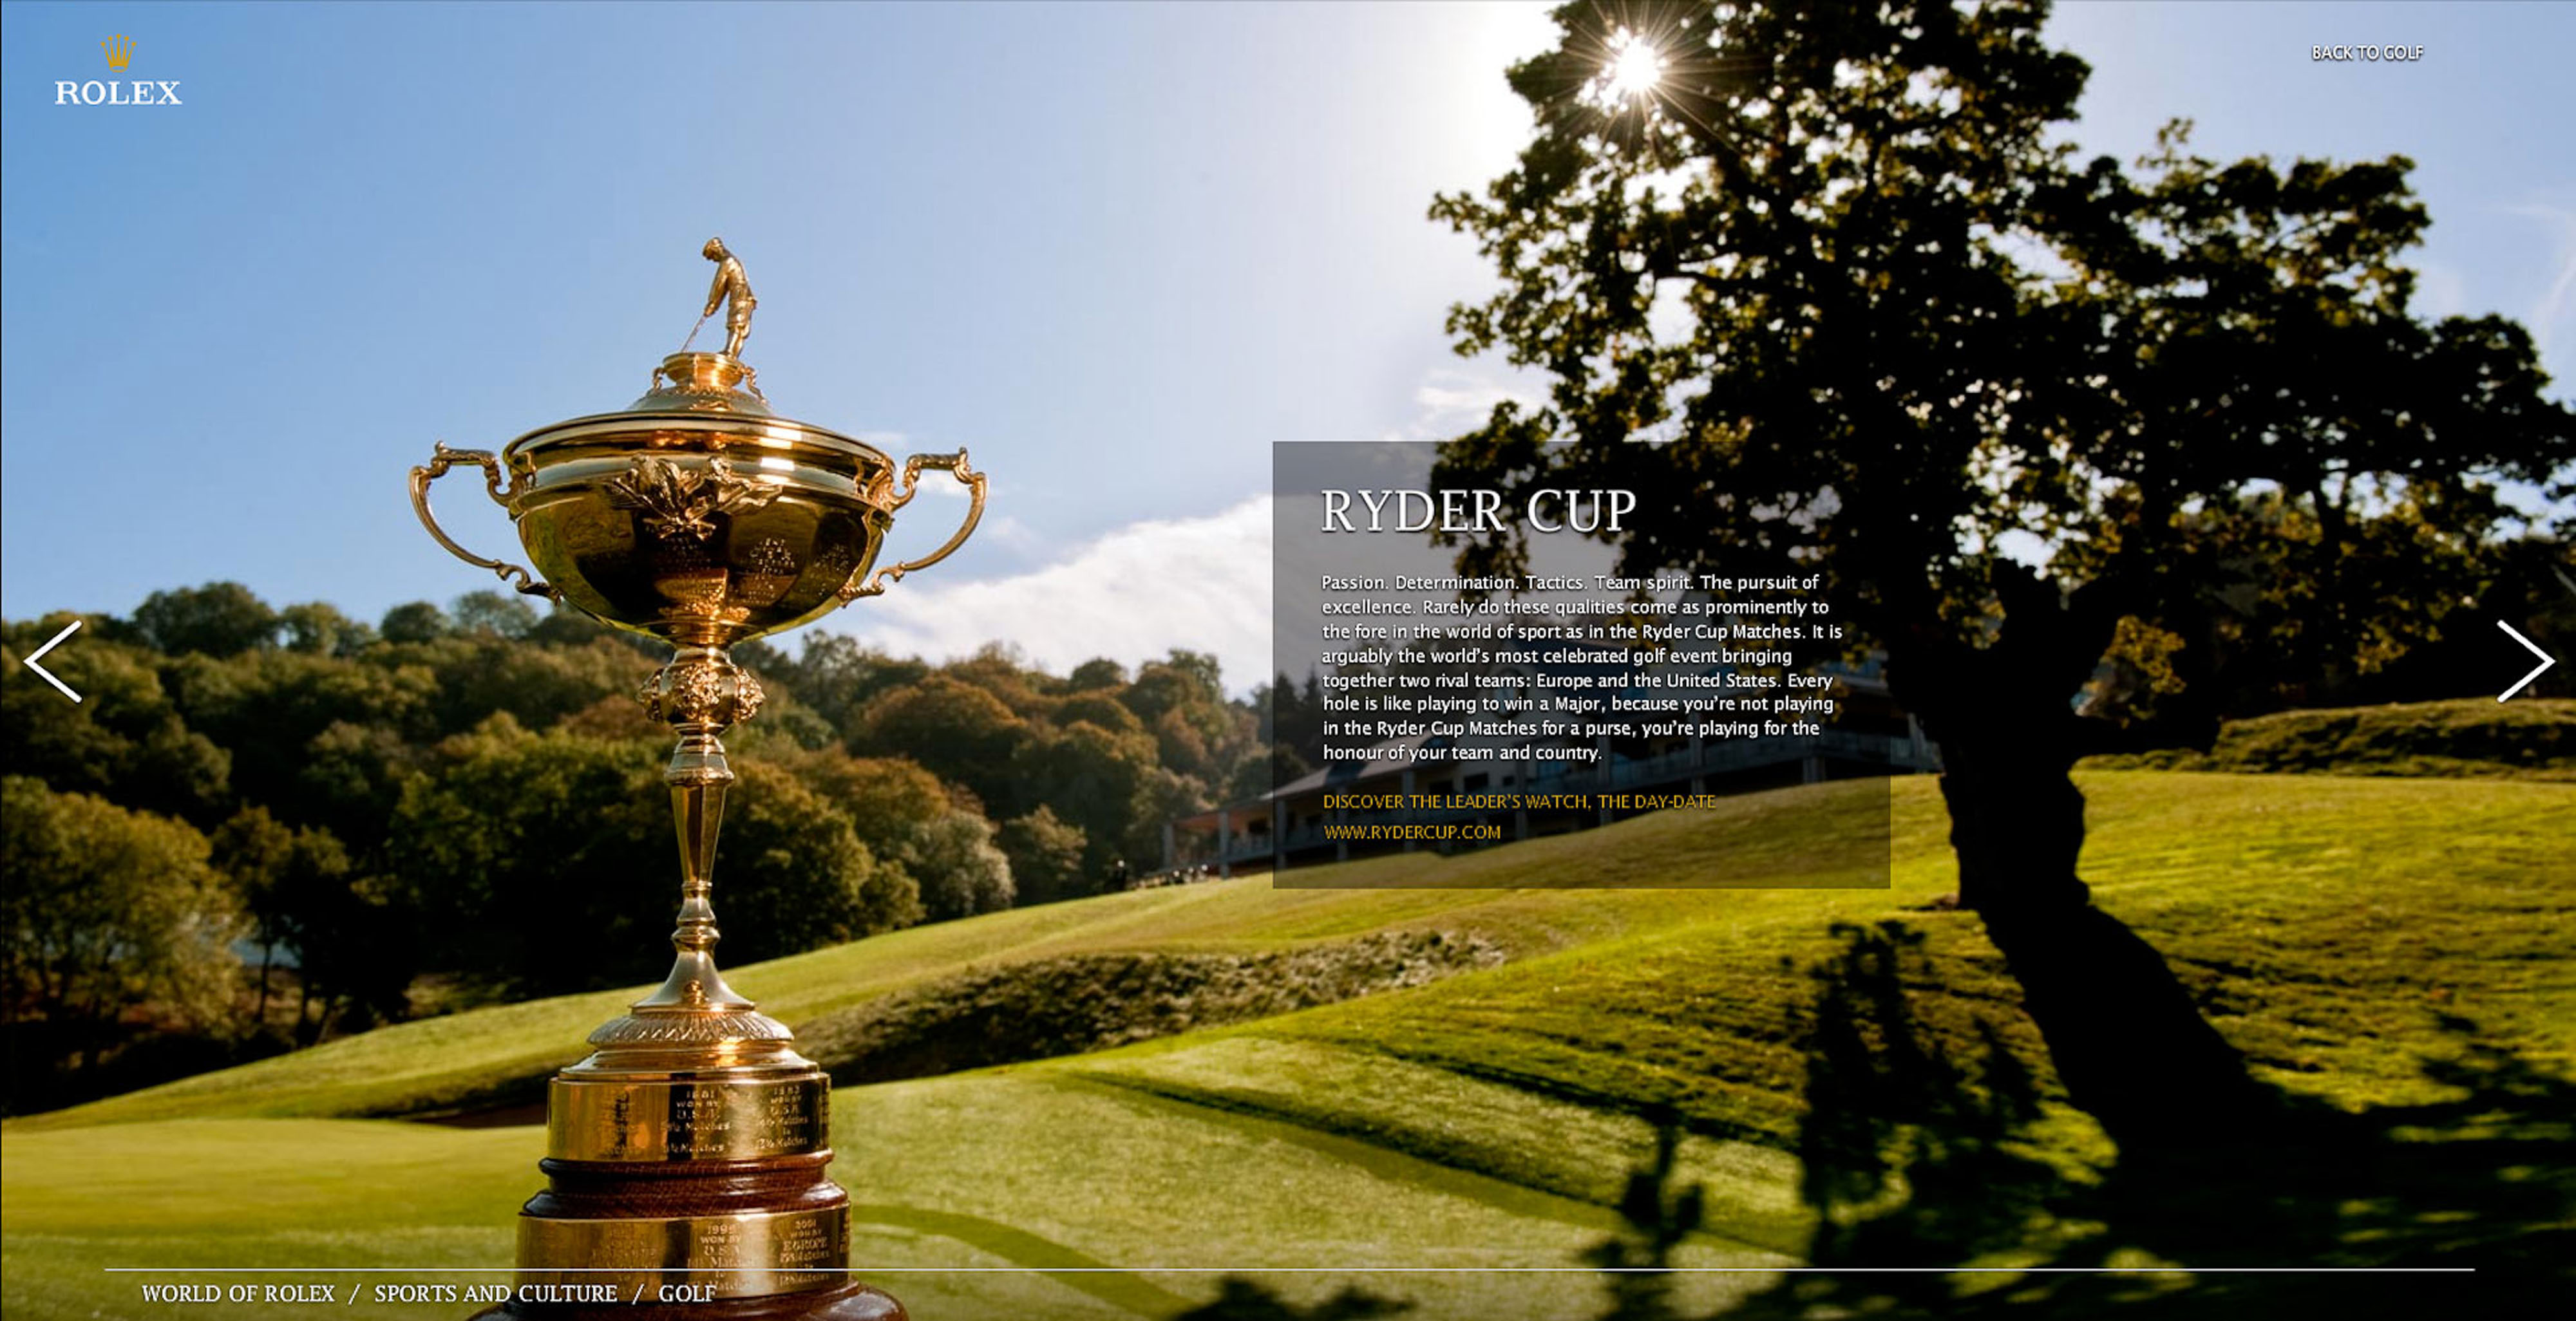 Sunrise with Golf Ryder Cup, Celtic Manor, Wales